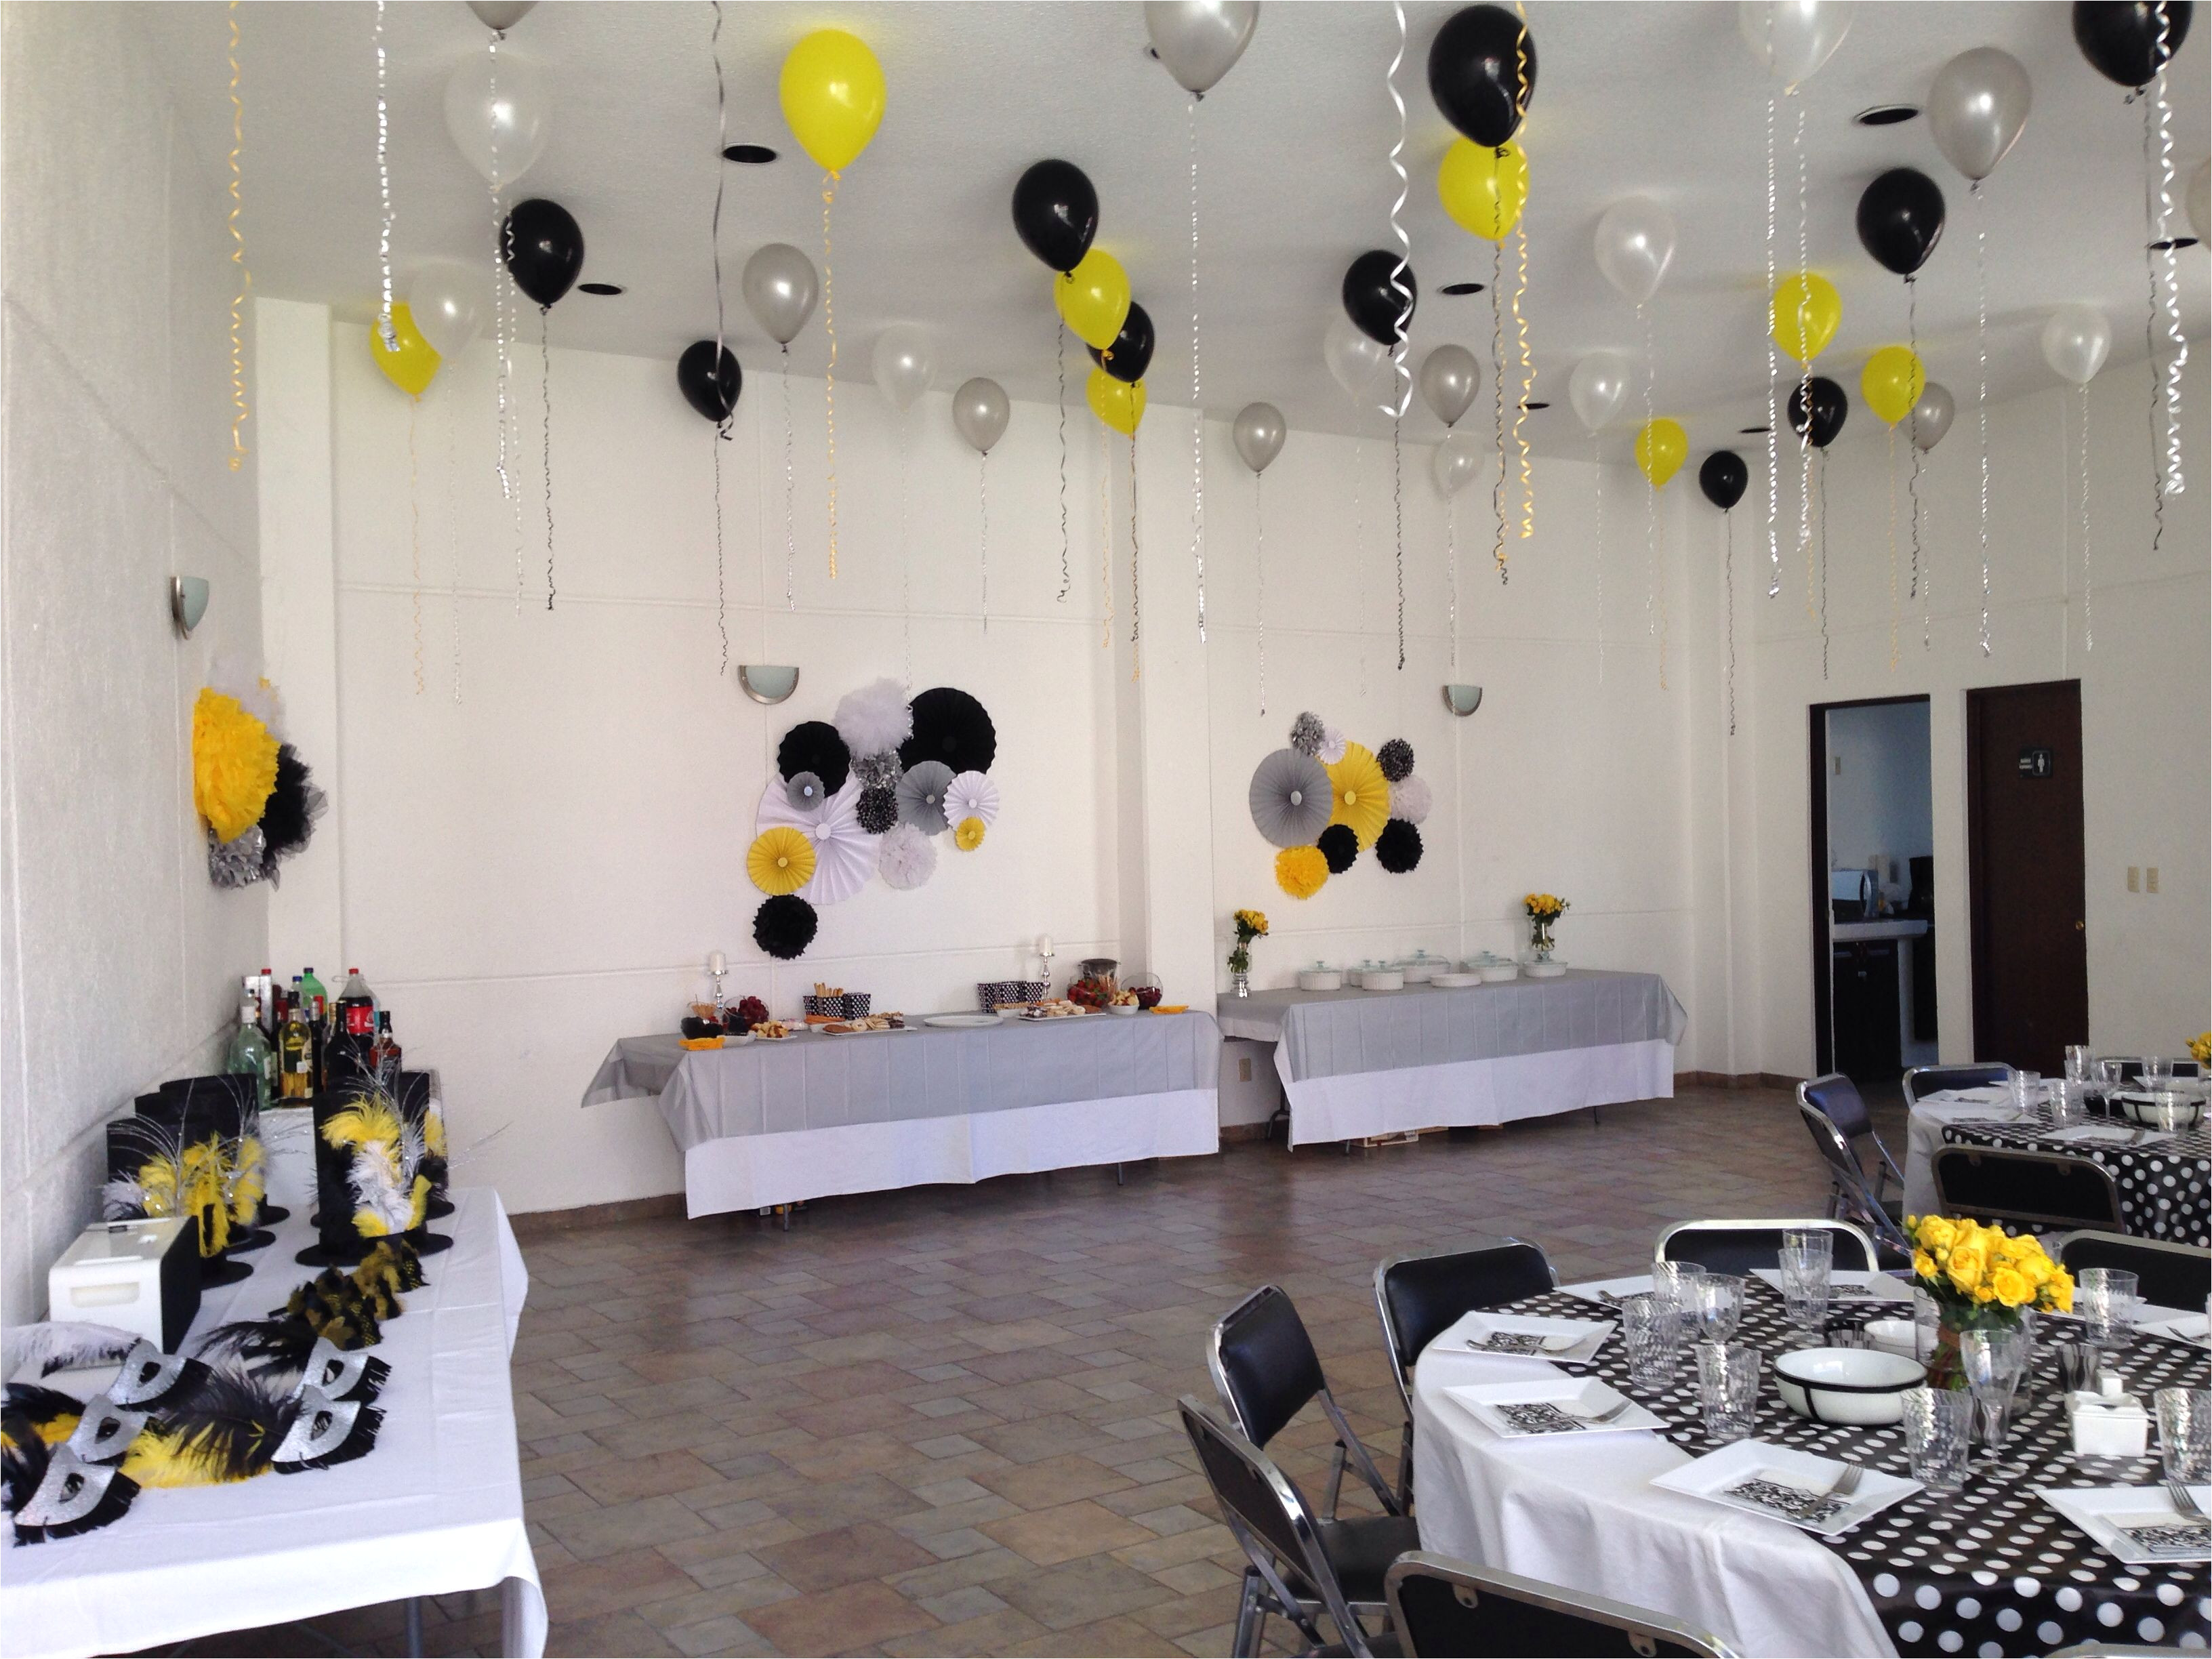 decoracia n fiesta blanco y negro party yellow party fiesta decoracia n blanco y negro amarillos globos decoracia n